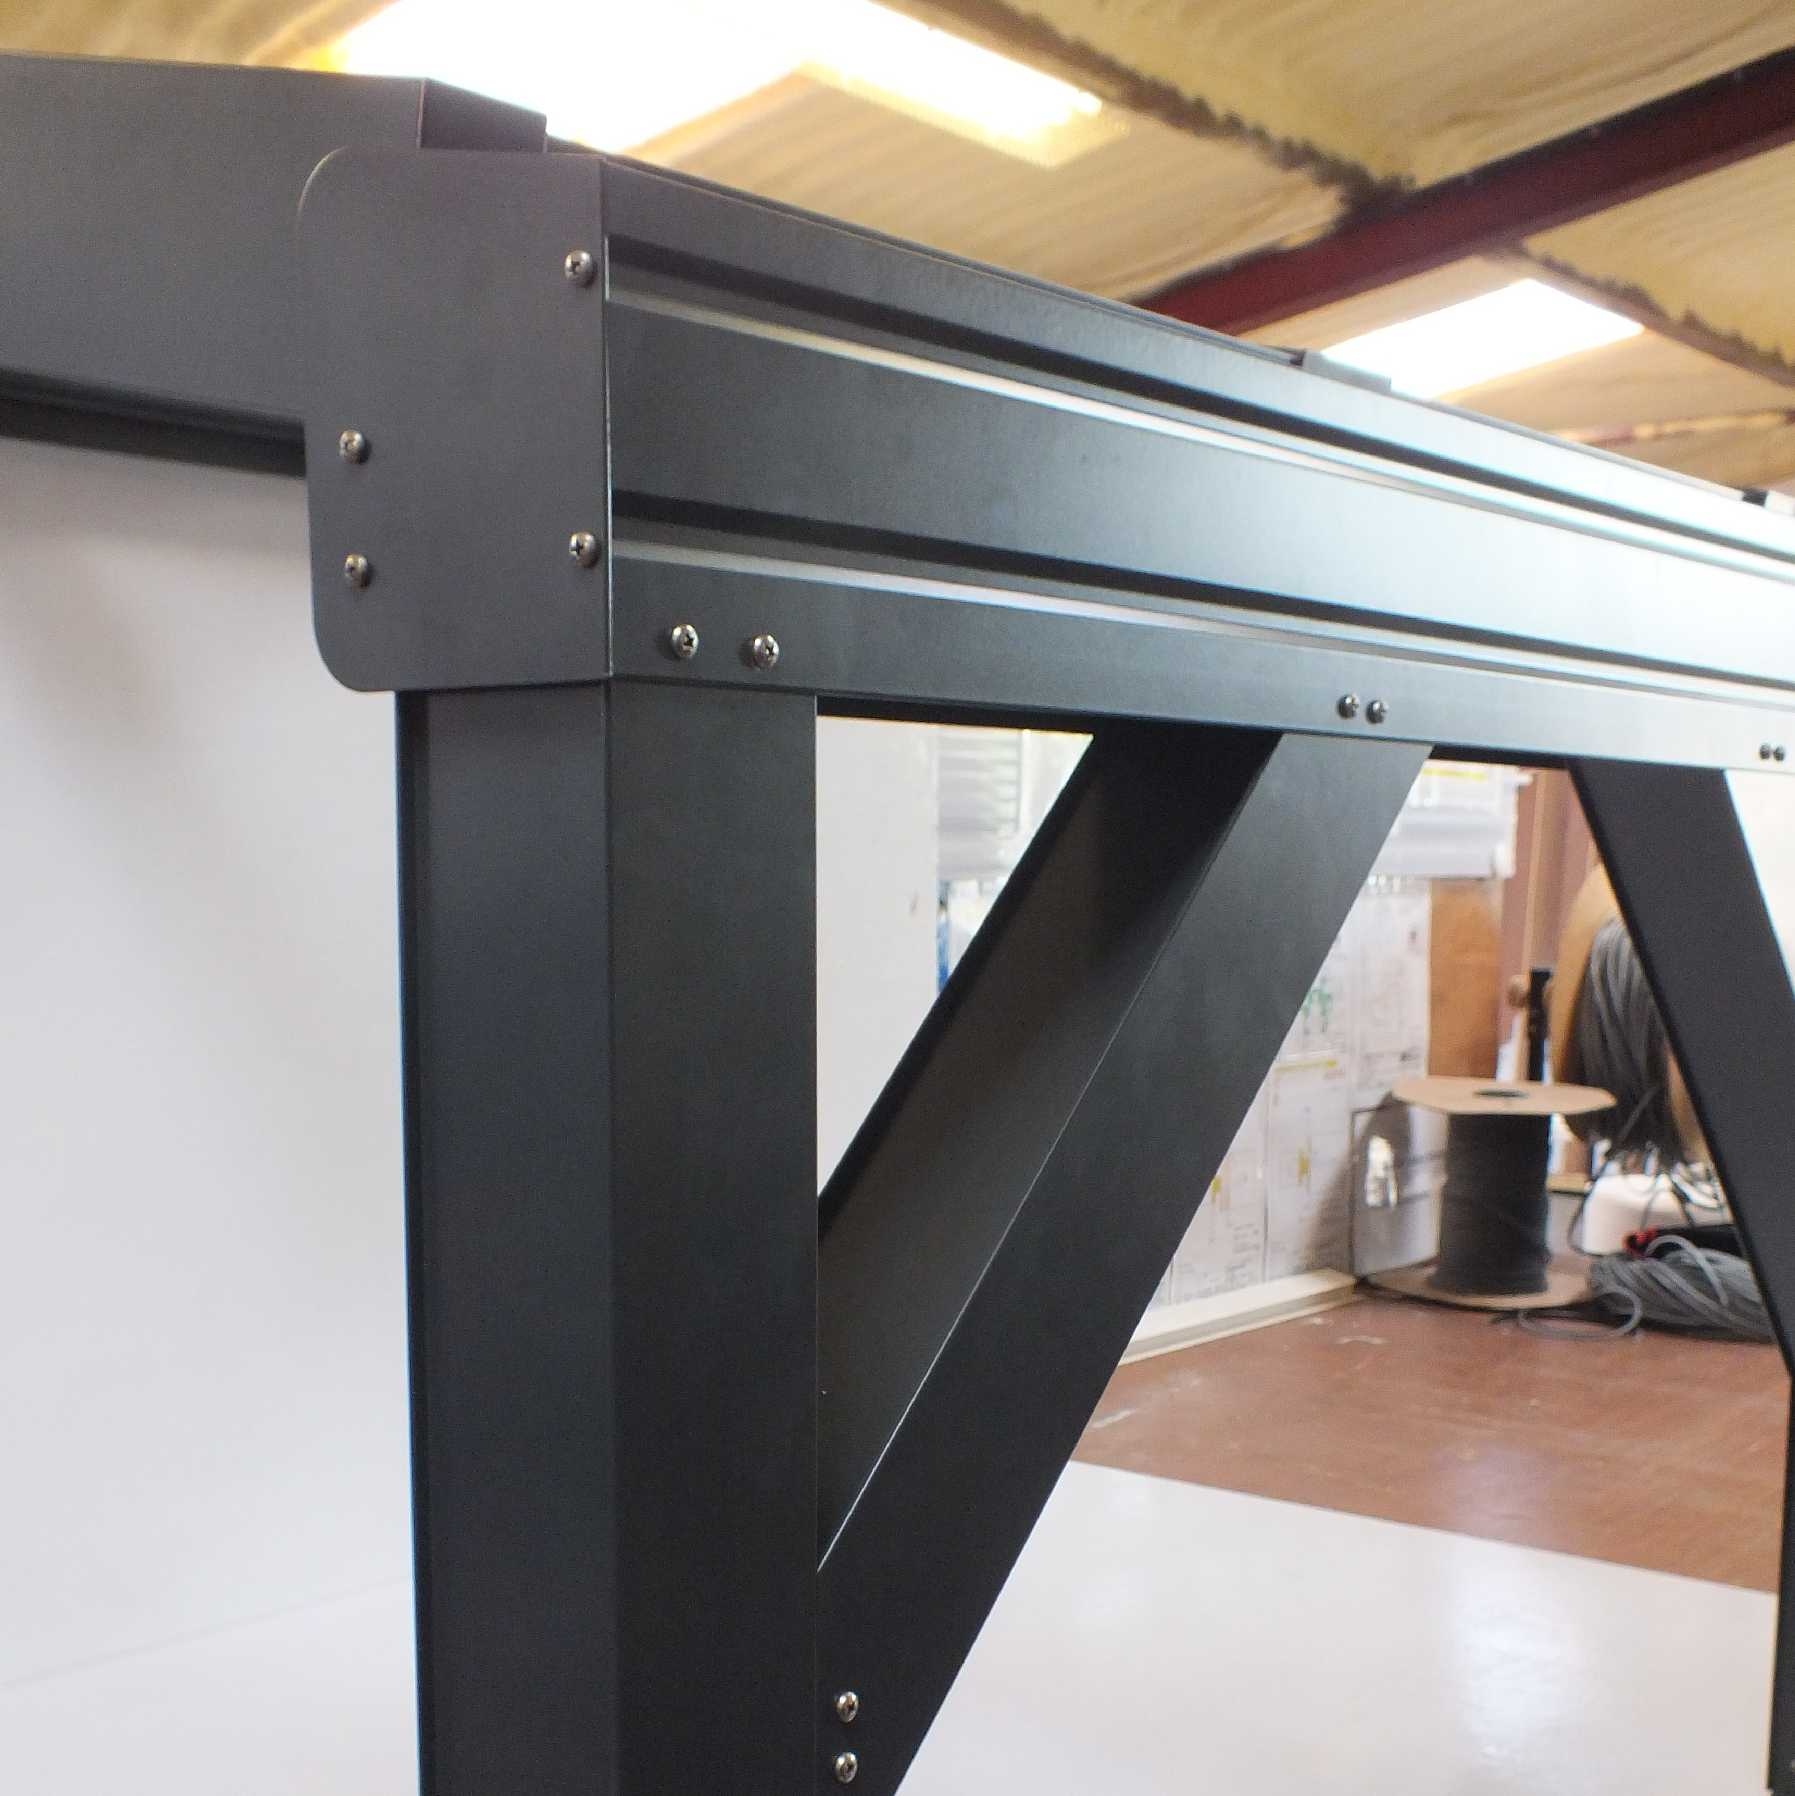 Omega Smart Lean-To Canopy, Anthracite Grey, UNGLAZED for 6mm Glazing - 6.3m (W) x 2.5m (P), (4) Supporting Posts from Omega Build